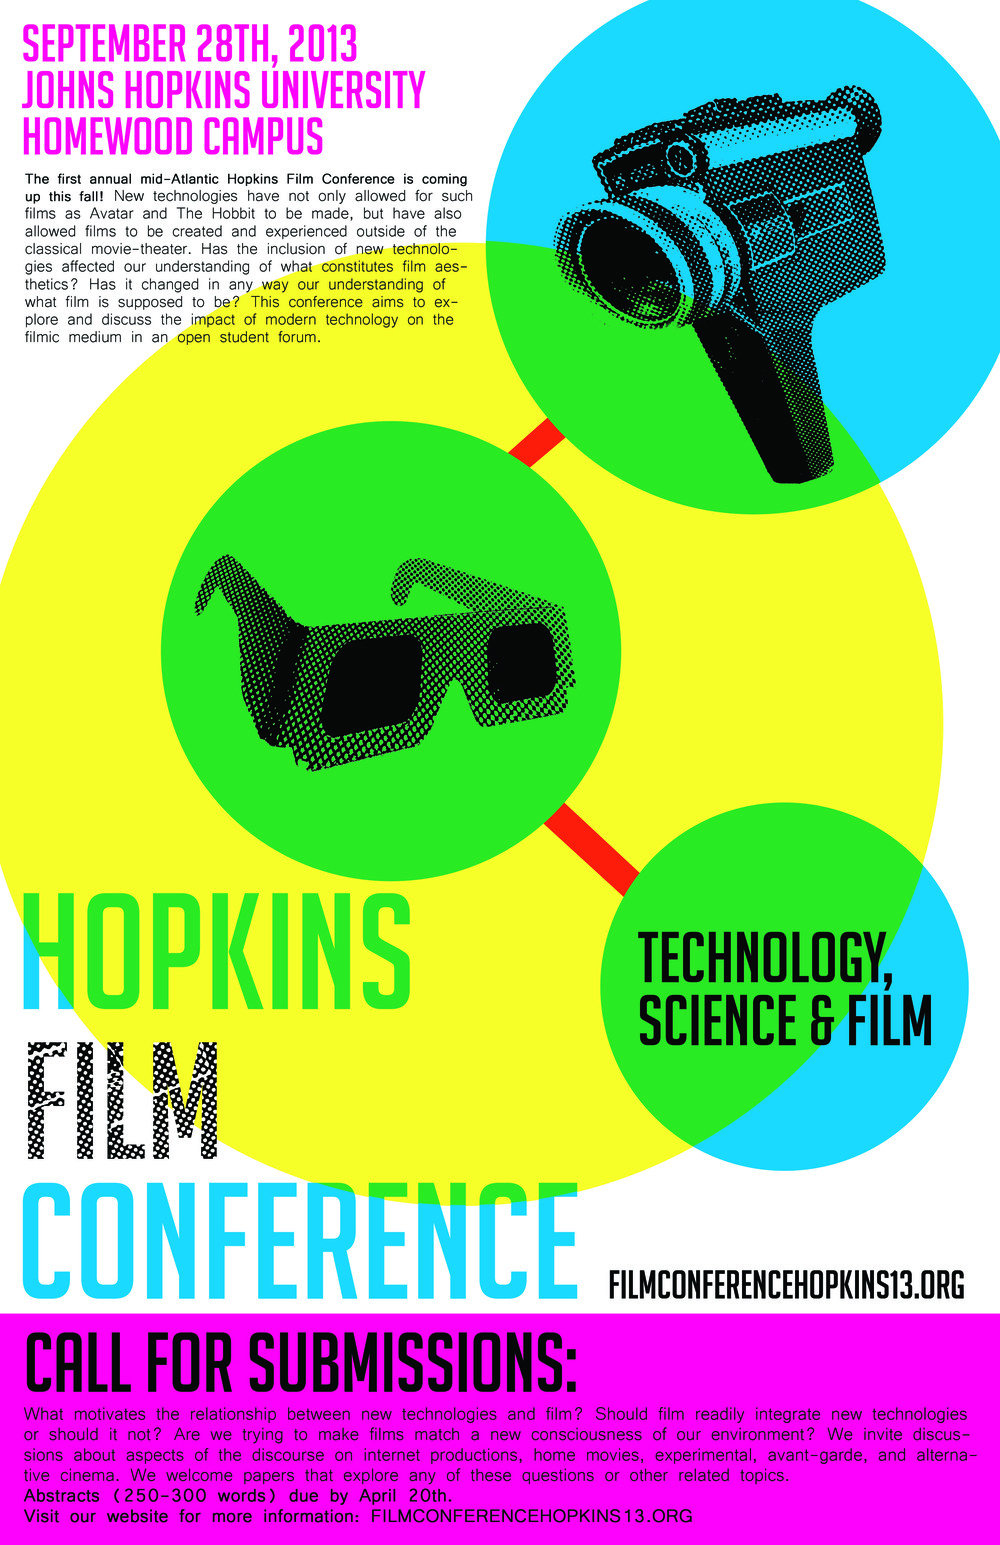 PICTURES: HOPKINS FILM CONFERENCE